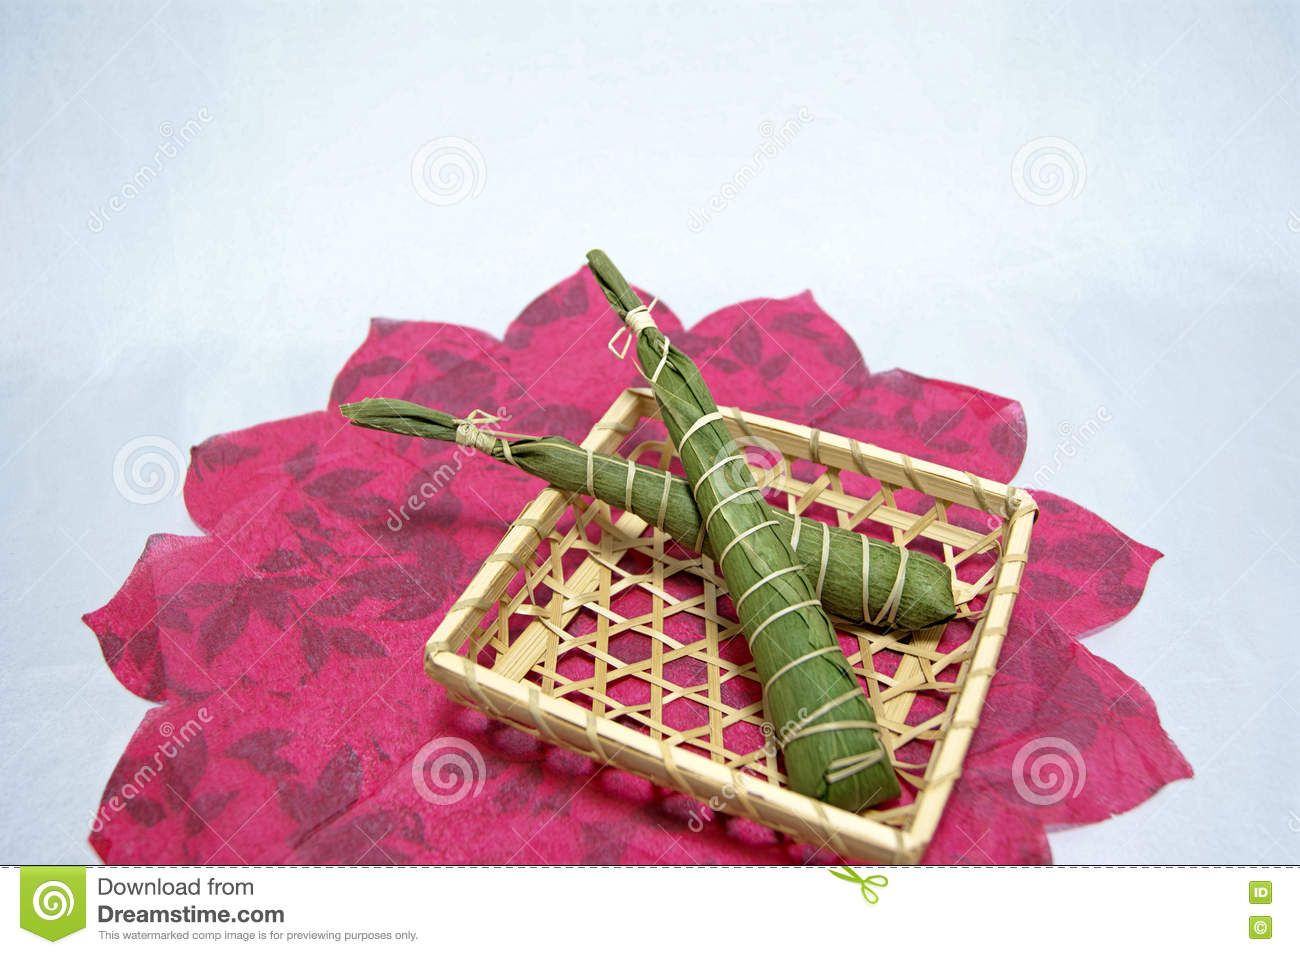 Japan s traditional celebration: rice cakes wrapped in leaves of bamboo on the Children s day